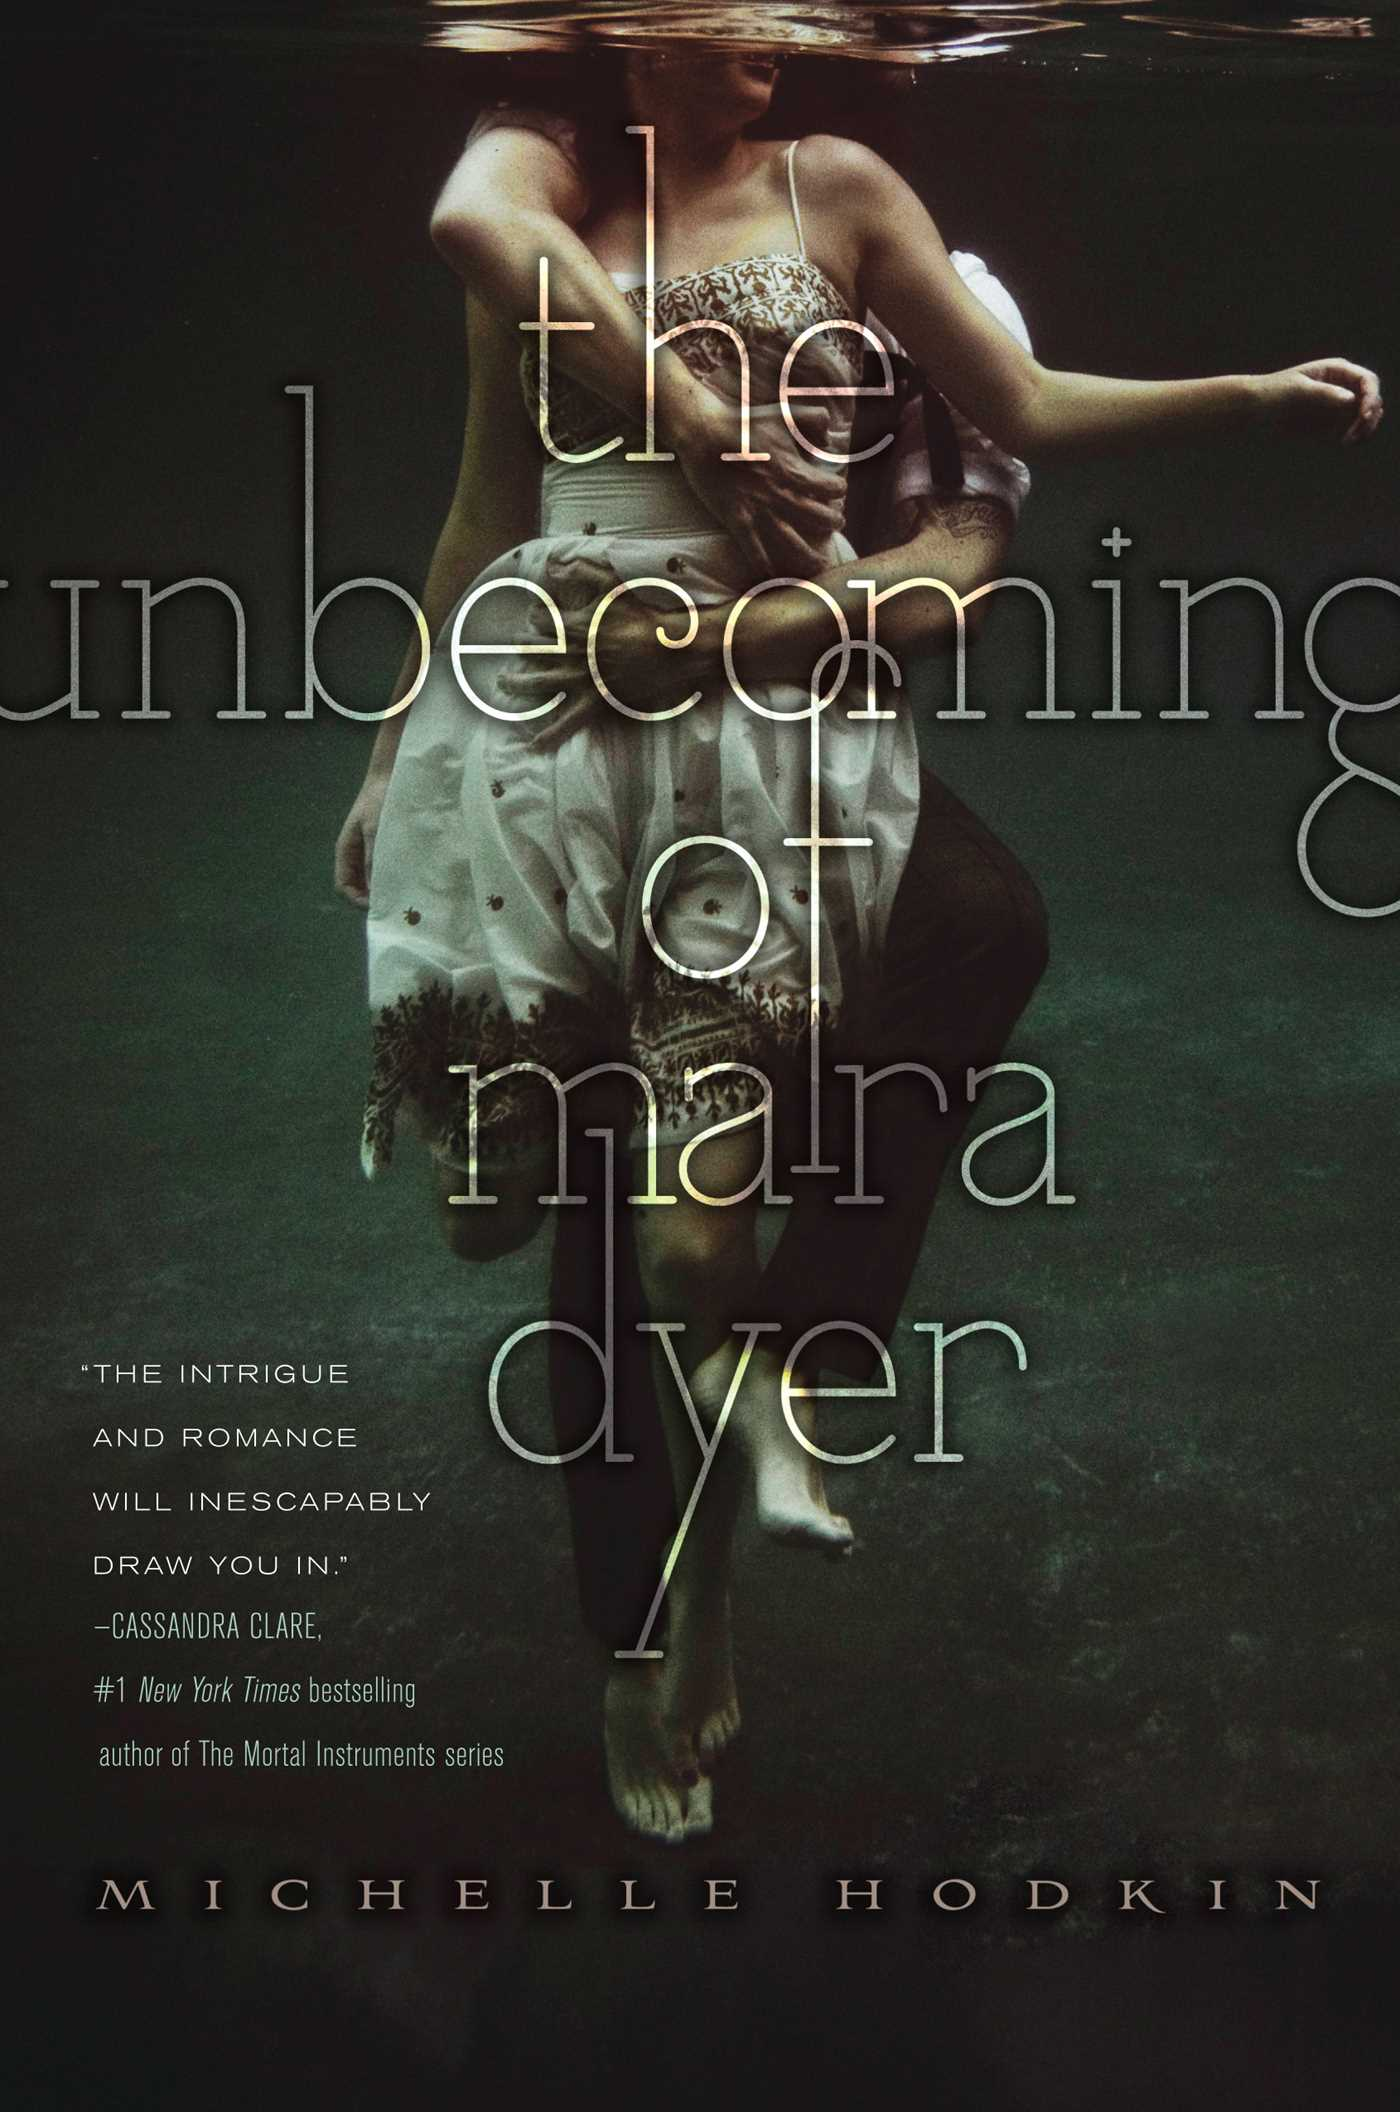 Cover Image of The Unbecoming of Mara Dyer